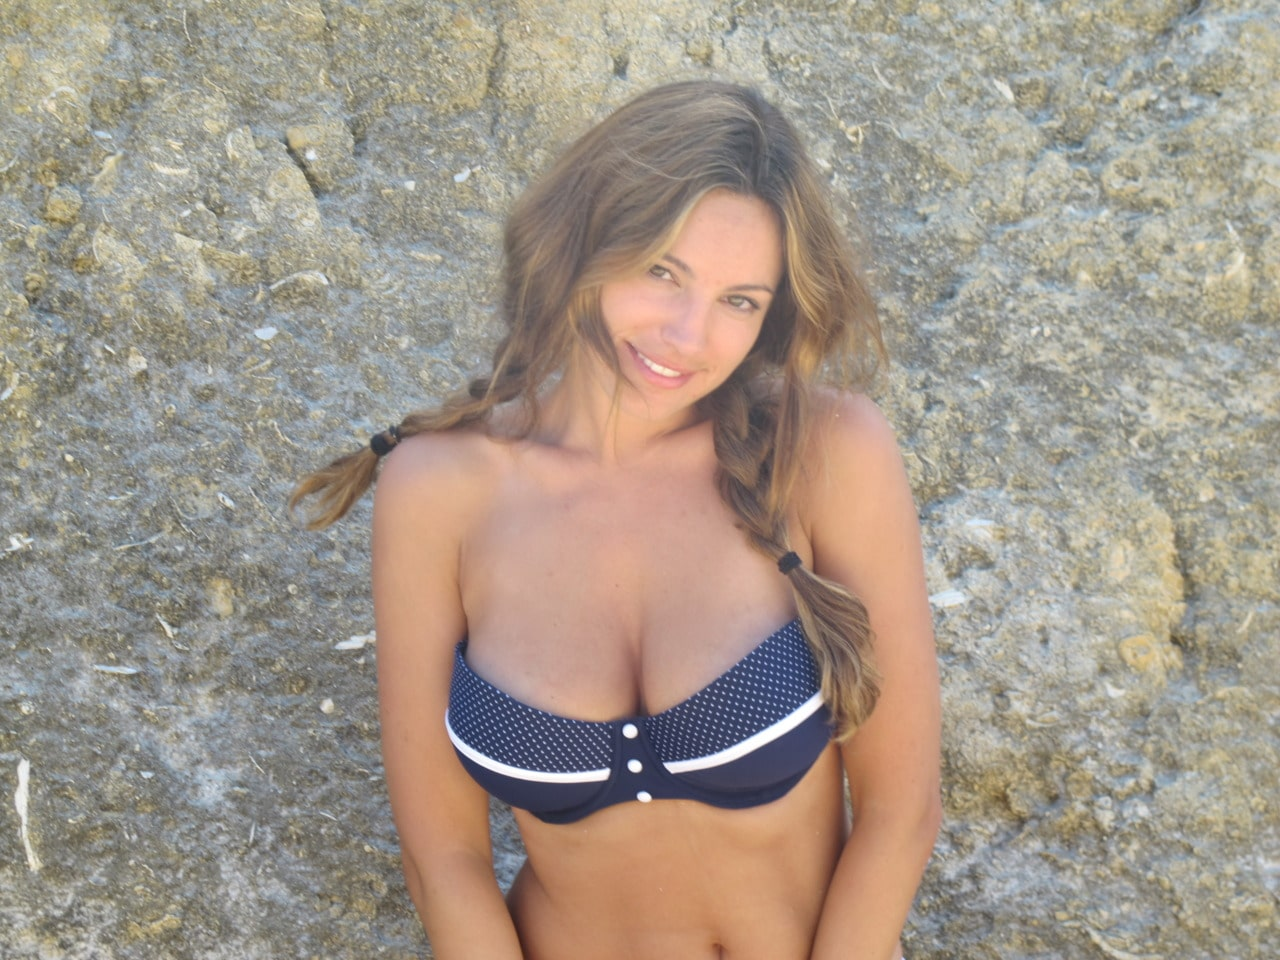 Kelly Brook is a preferred hawt bixch. Images from her tumblr account.